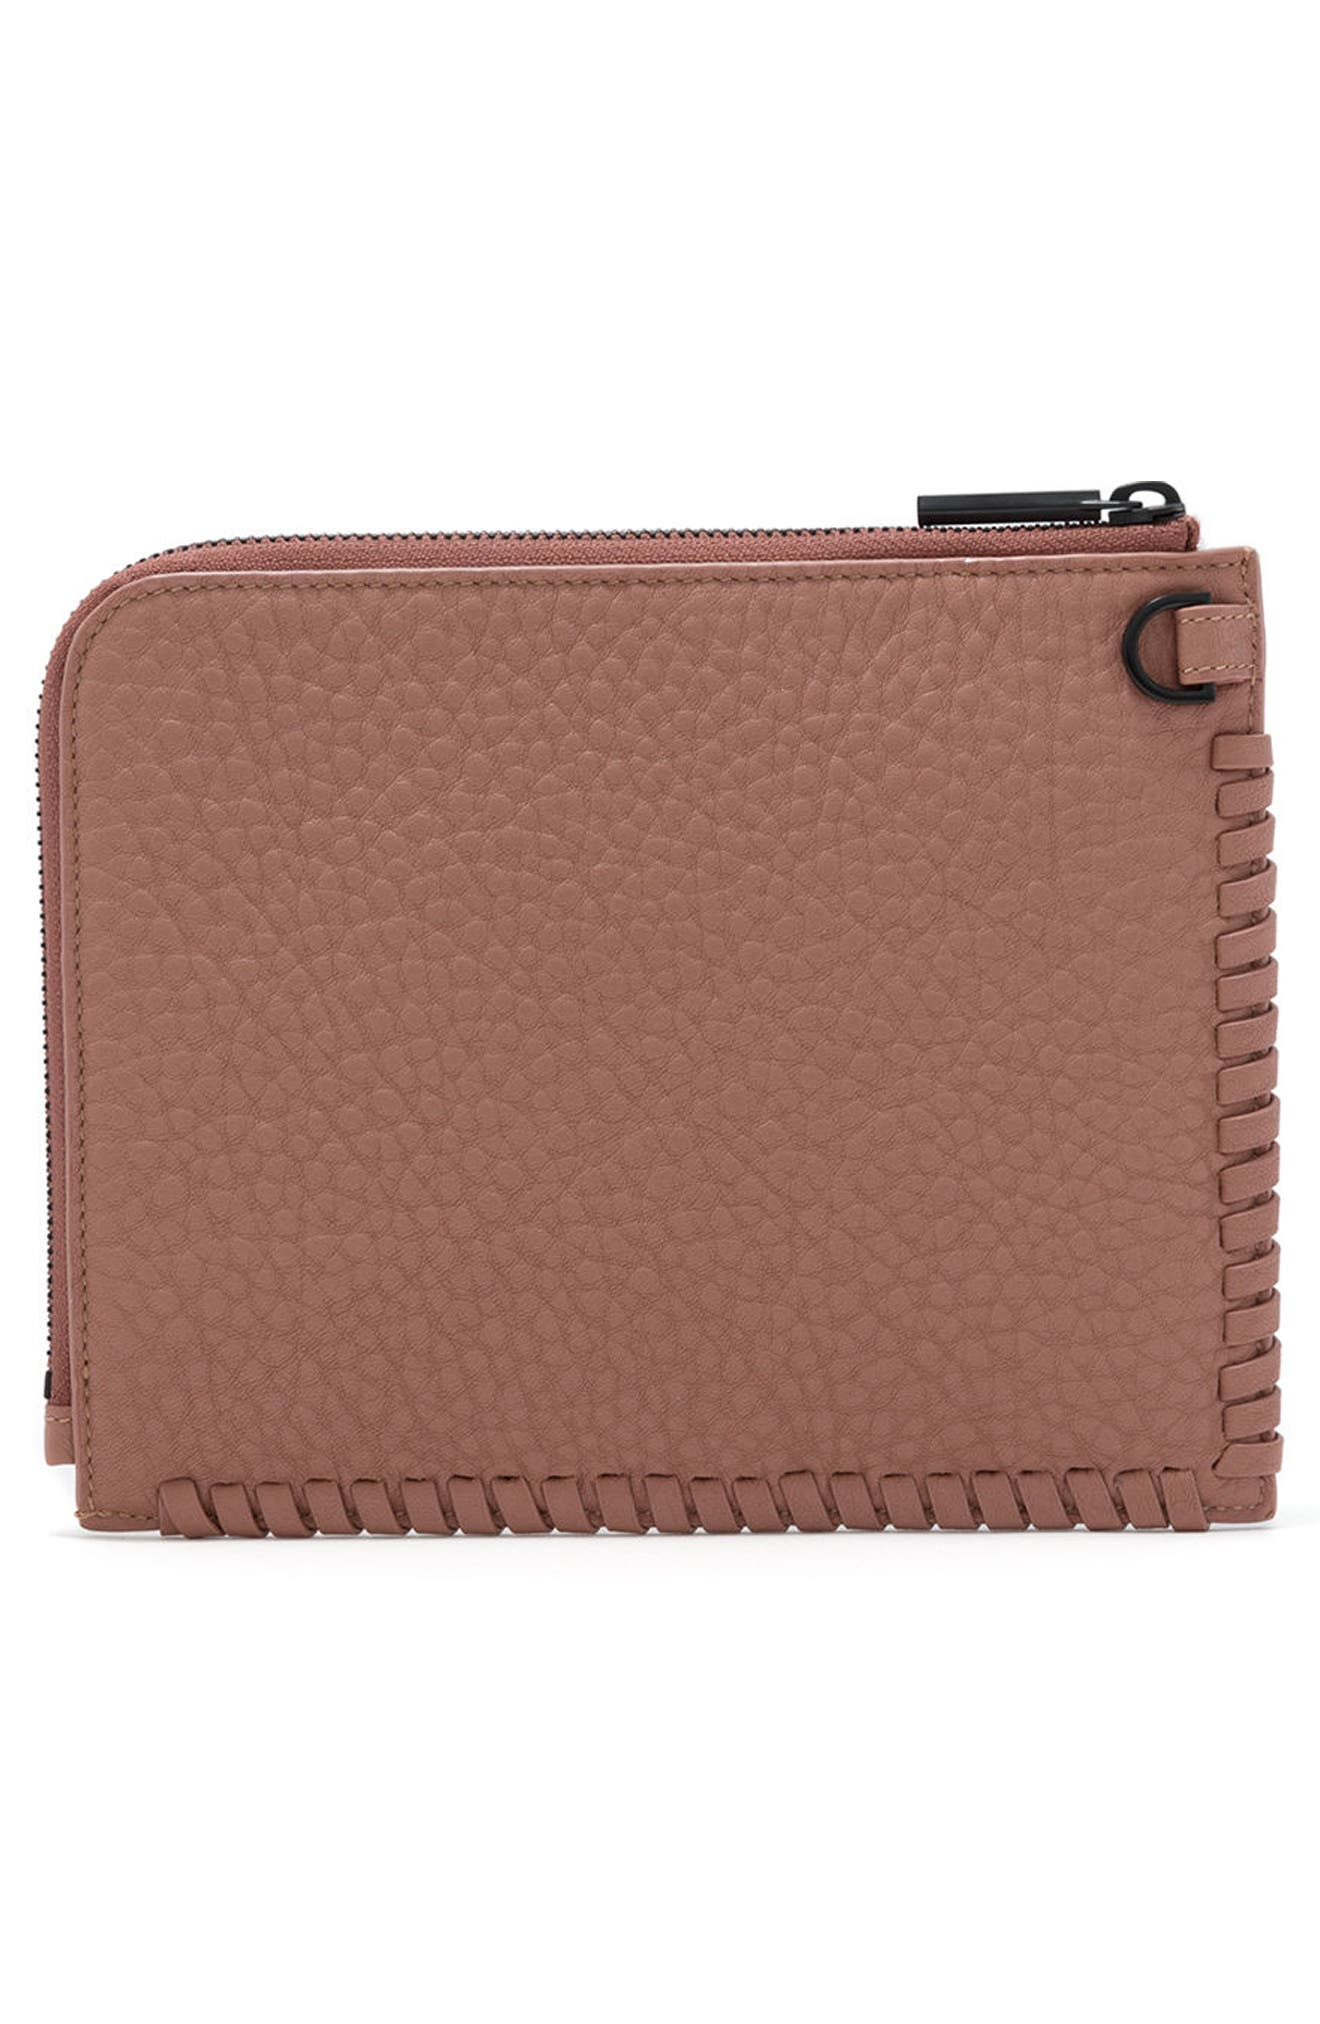 Small Elle Leather Clutch,                             Alternate thumbnail 15, color,